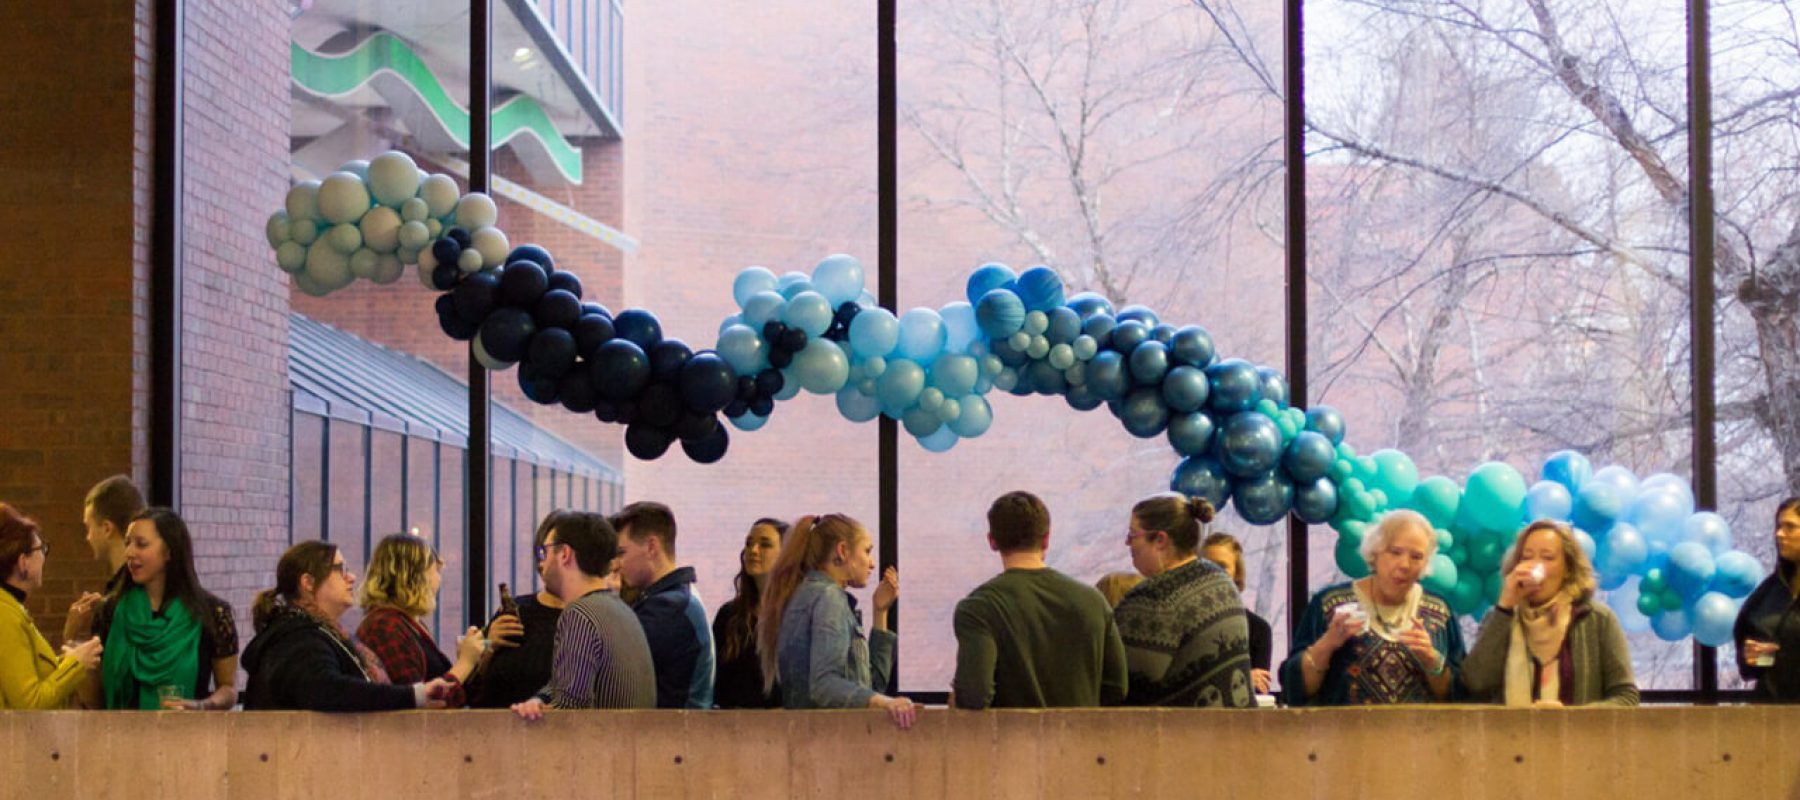 Gallery event with balloons